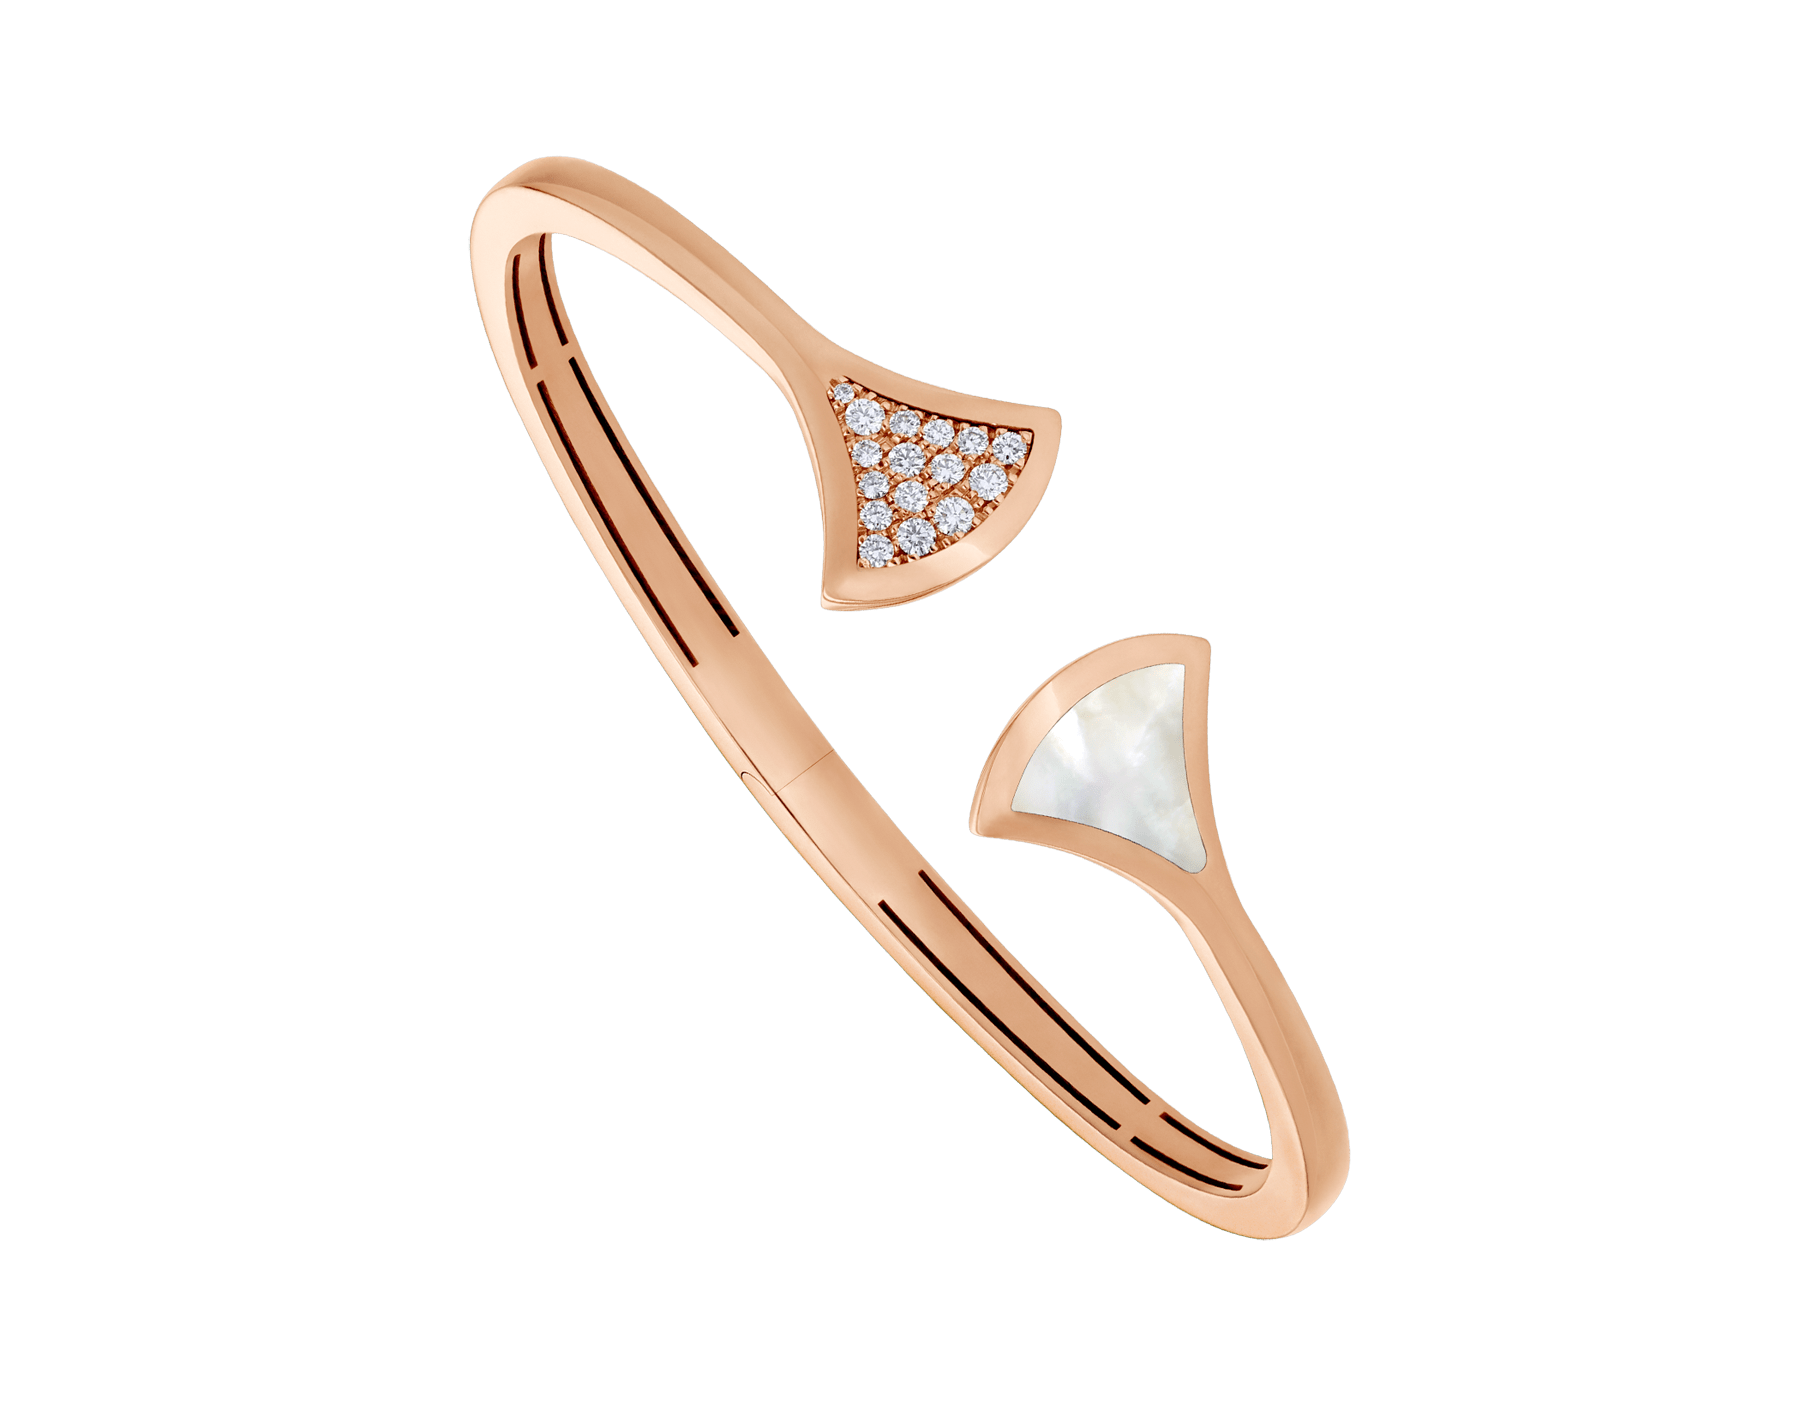 DIVAS' DREAM 18 kt rose gold bangle bracelet set with a mother of pearl element and pavé diamonds. BR858680 image 1